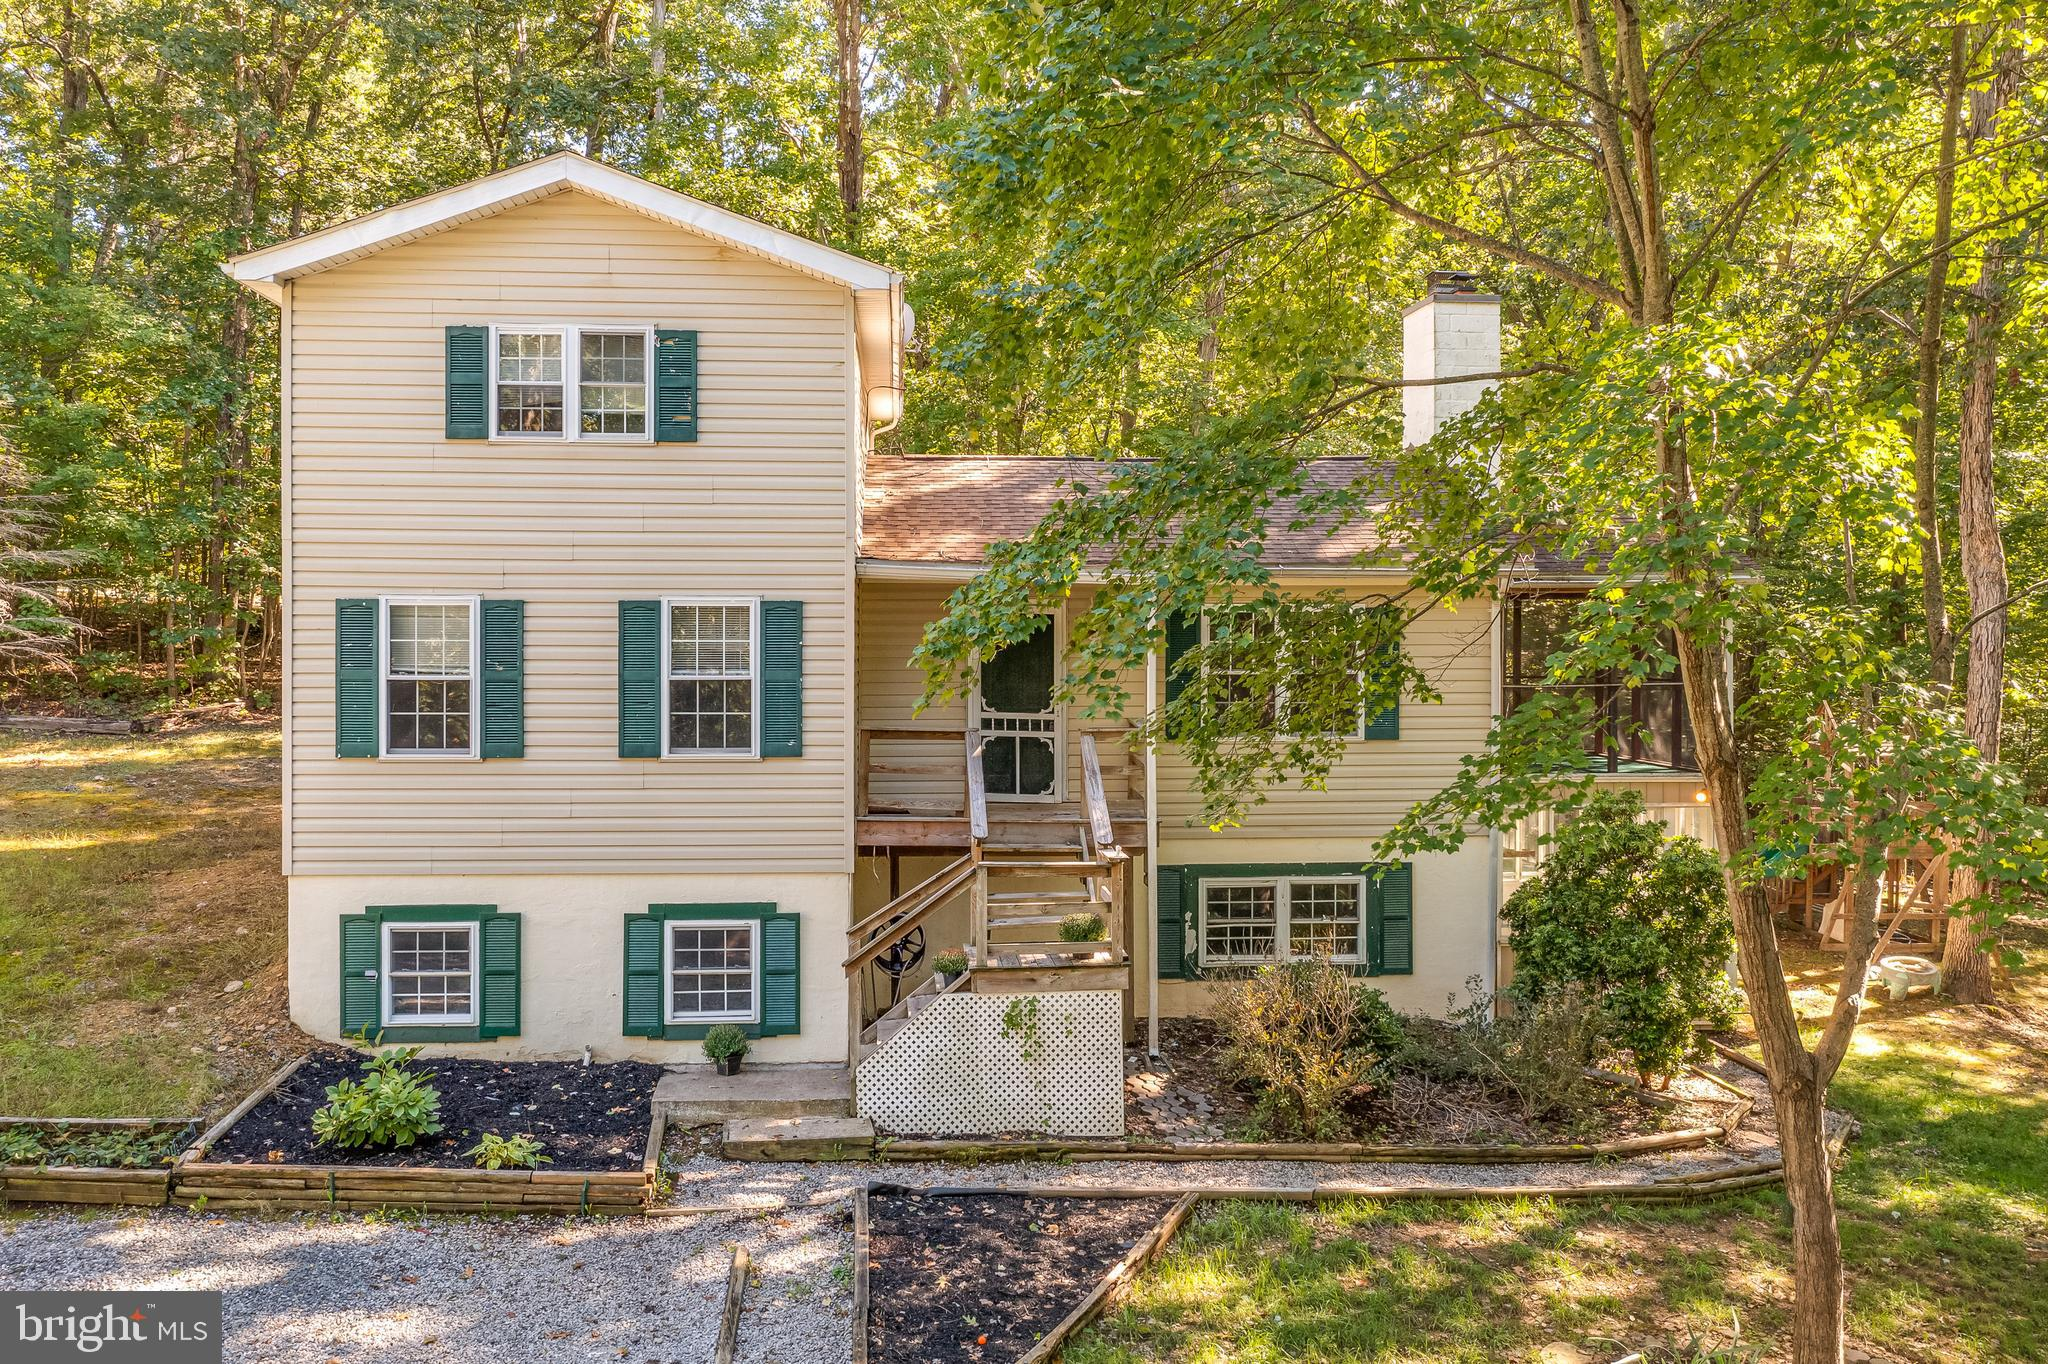 """4 BEDROOM 3 BATHS ON 2 ACRES.  AS IS"""" OWNER HAS NOT LIVED IN HOUSE FOR 15 YEARS AND IS OUT OF AREA. CLOSE TO MISSION RD AND GOOD COMMUTE TO LEESBURG. SEPERATE OFFICE CRAFT ROOM  OR HOMR SCHOOLING AREA"""